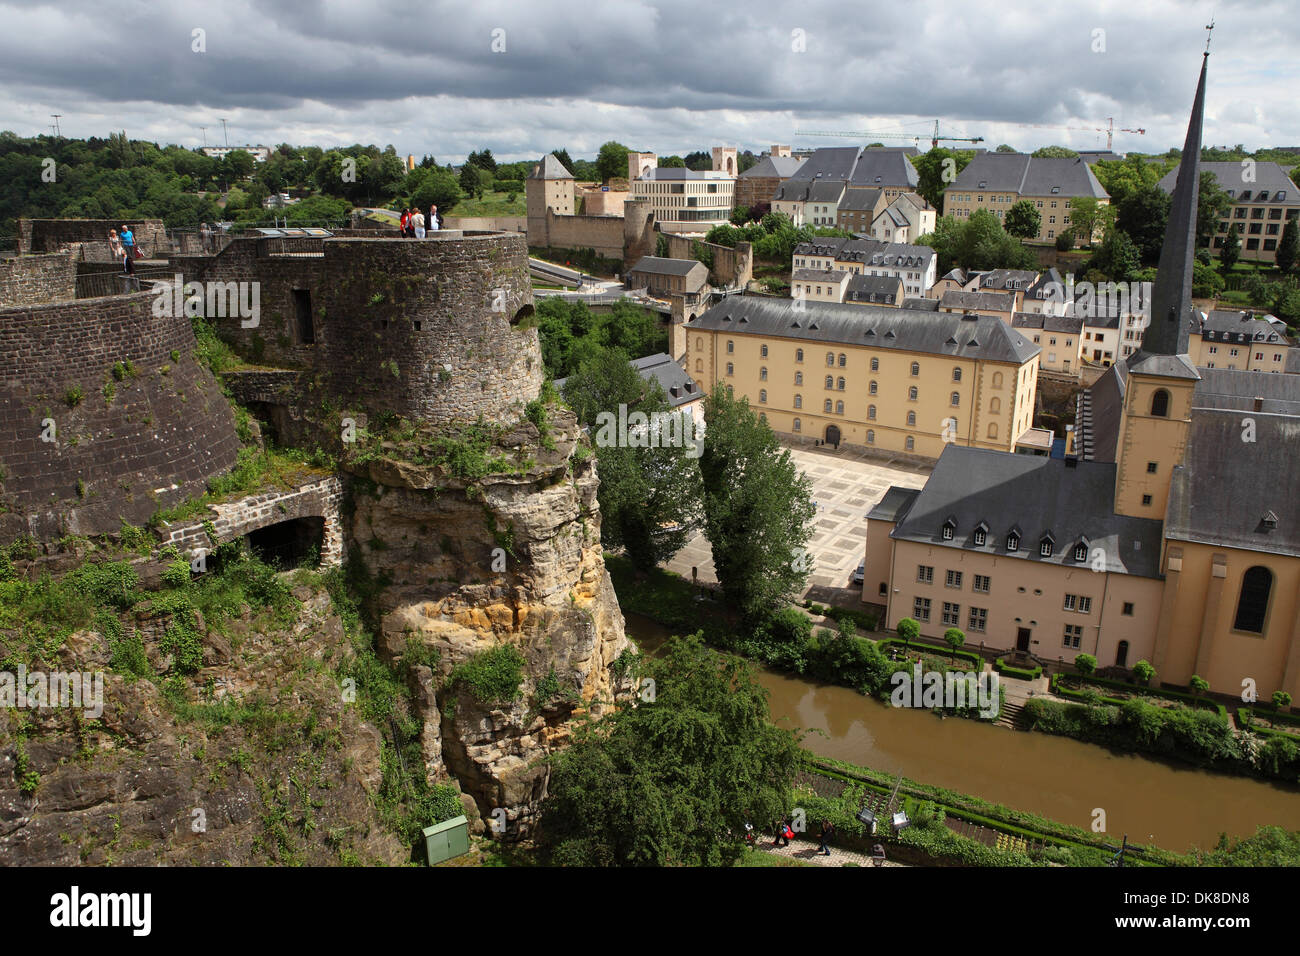 The Bock Casemates in Luxembourg. - Stock Image